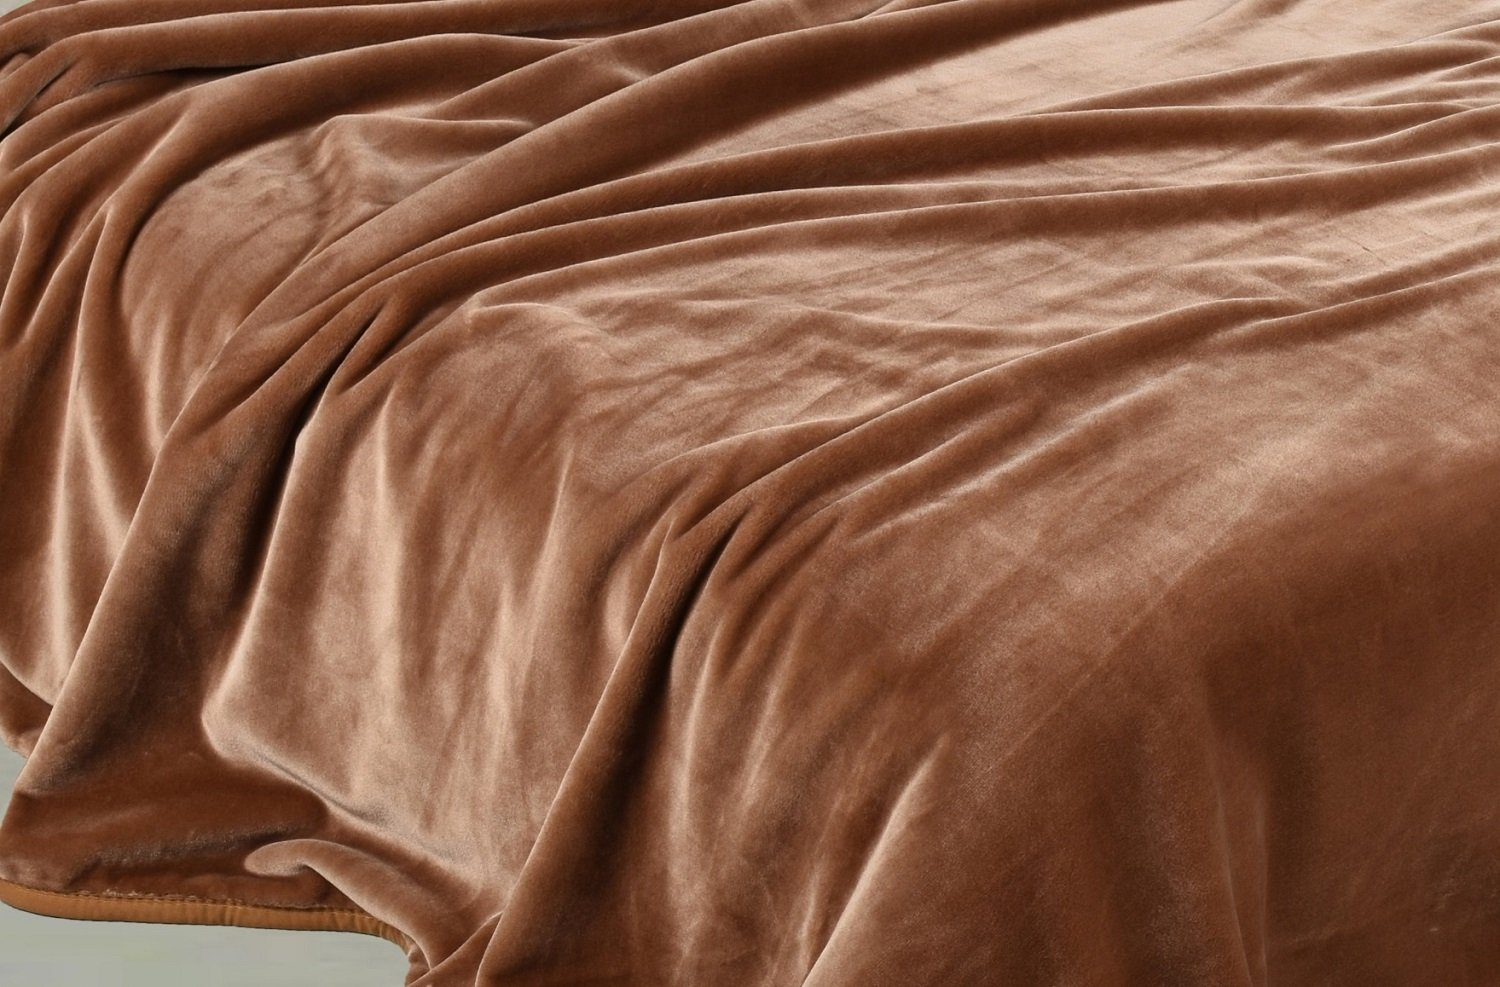 Chezmoi Collection Heavy Thick One Ply Korean Style Faux Mink Blanket 9-Pound Oversized King 105x92'' (King, Coffee)